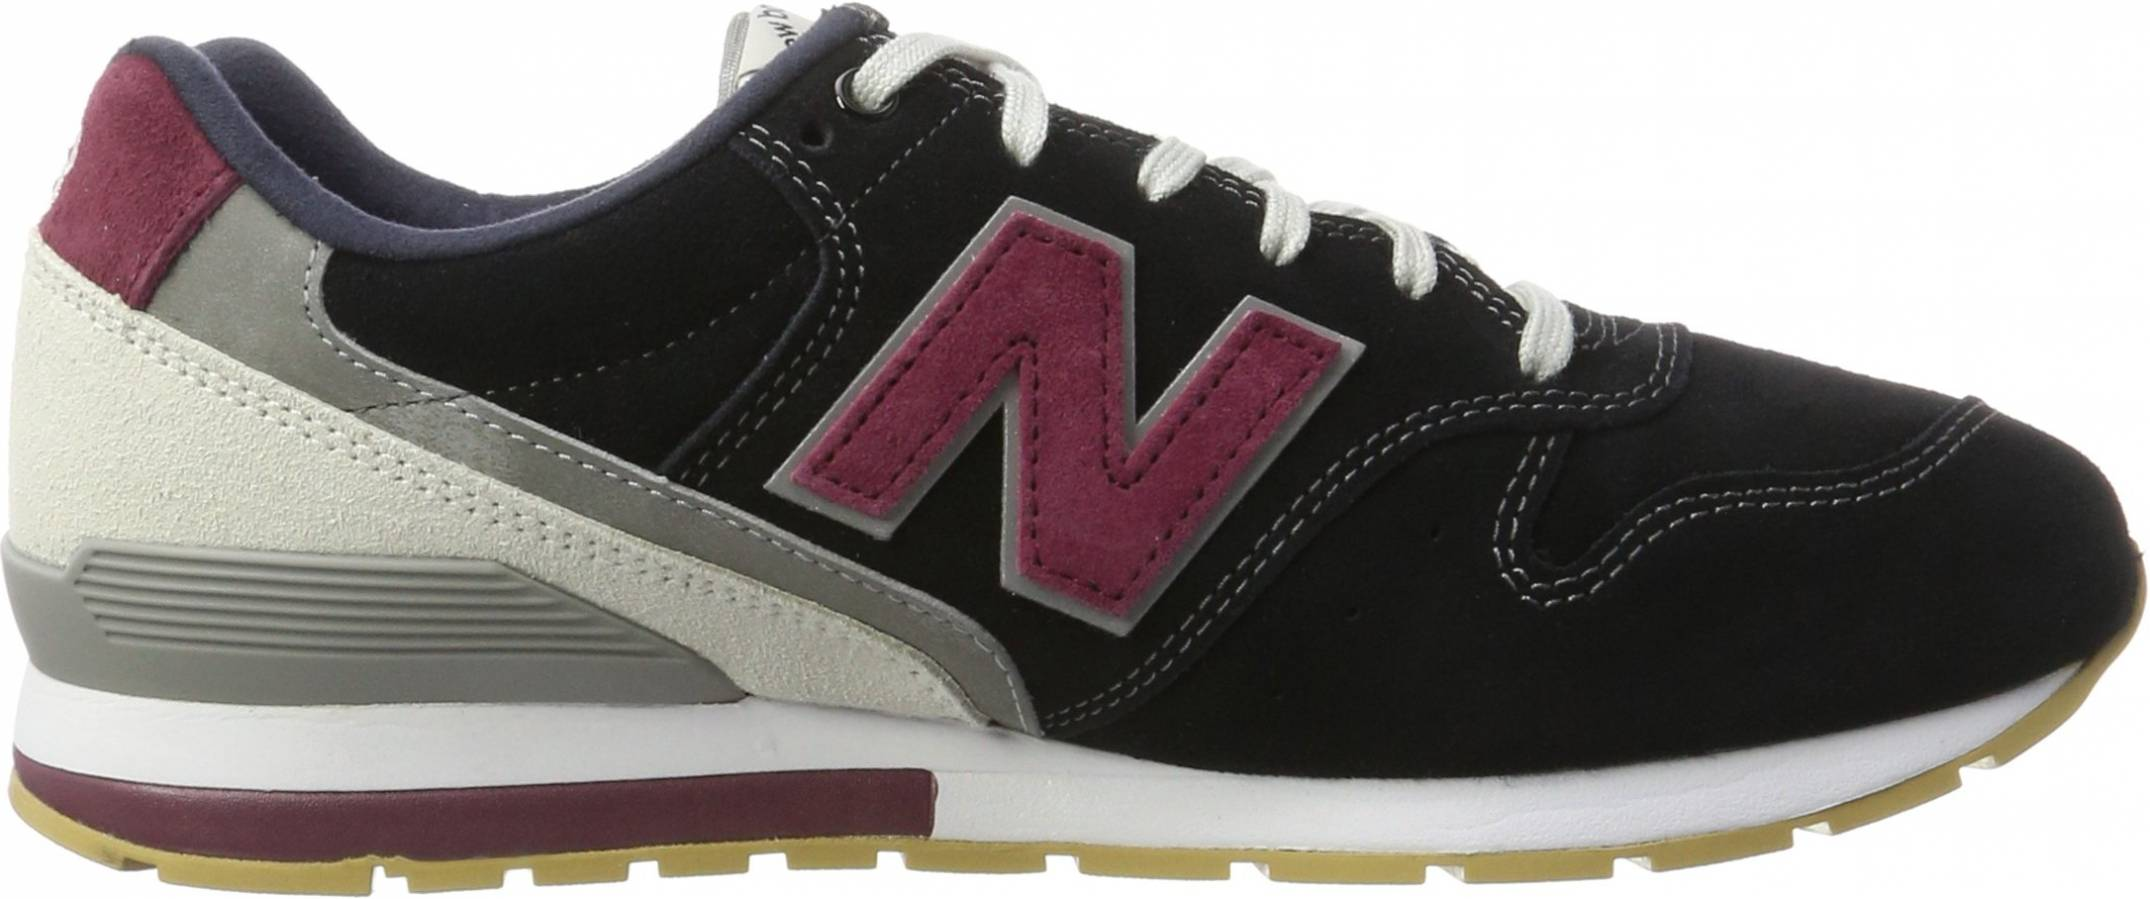 13 Reasons to/NOT to Buy New Balance 996 Suede (Aug 2021)   RunRepeat